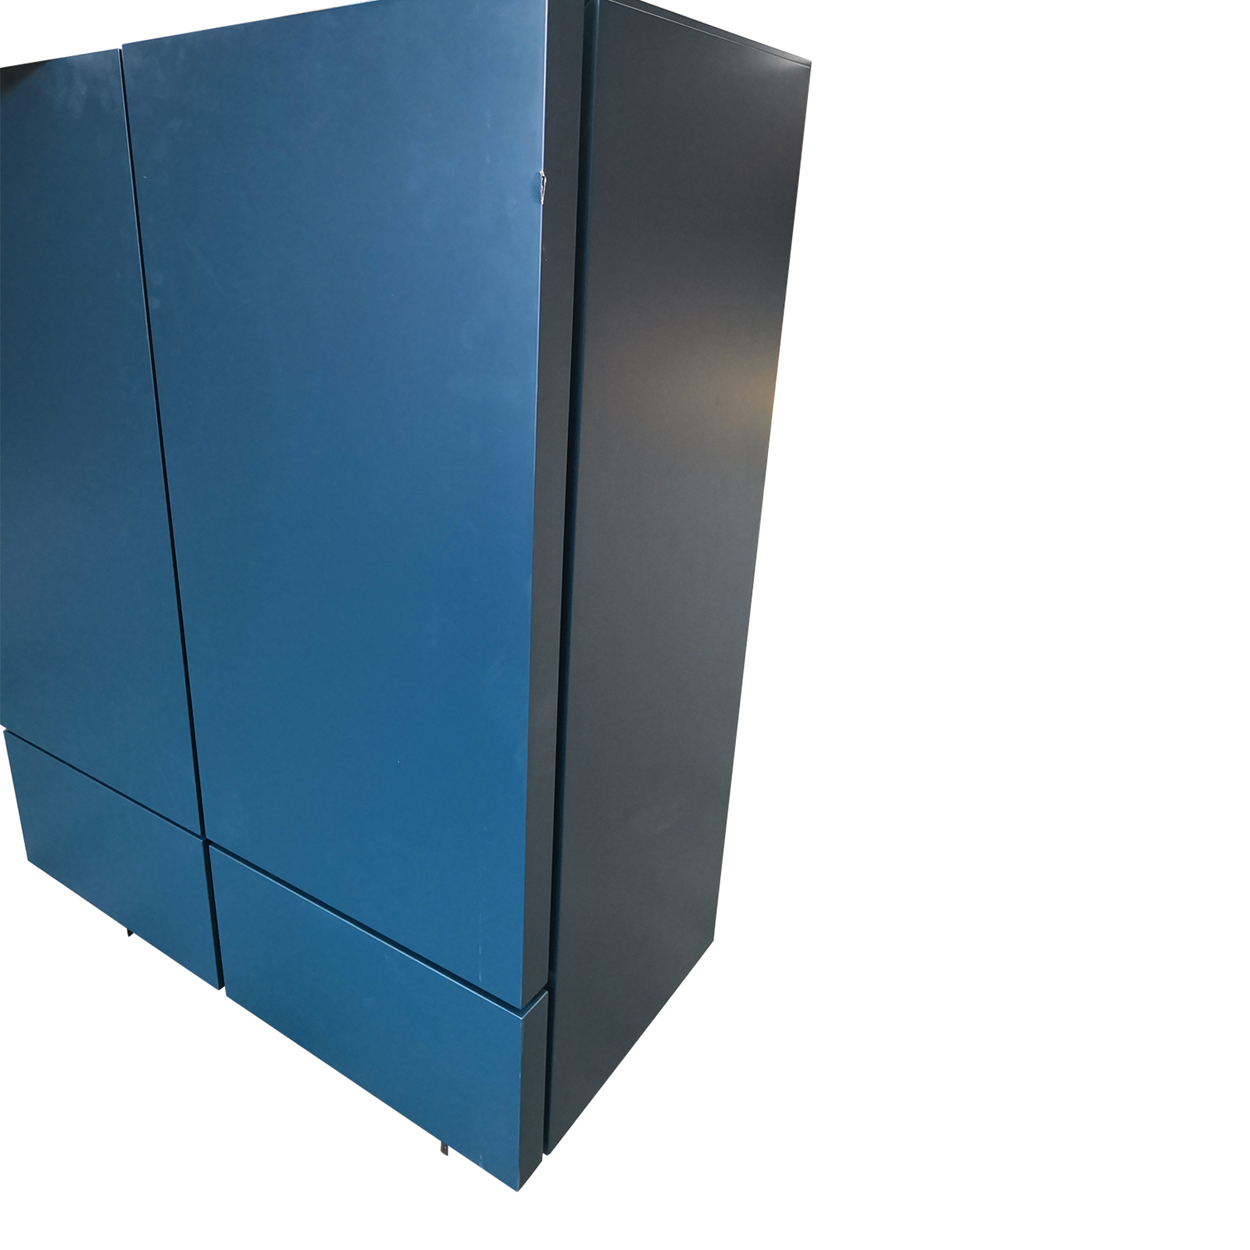 Two Design Lovers teal storage cabinet edge damage view